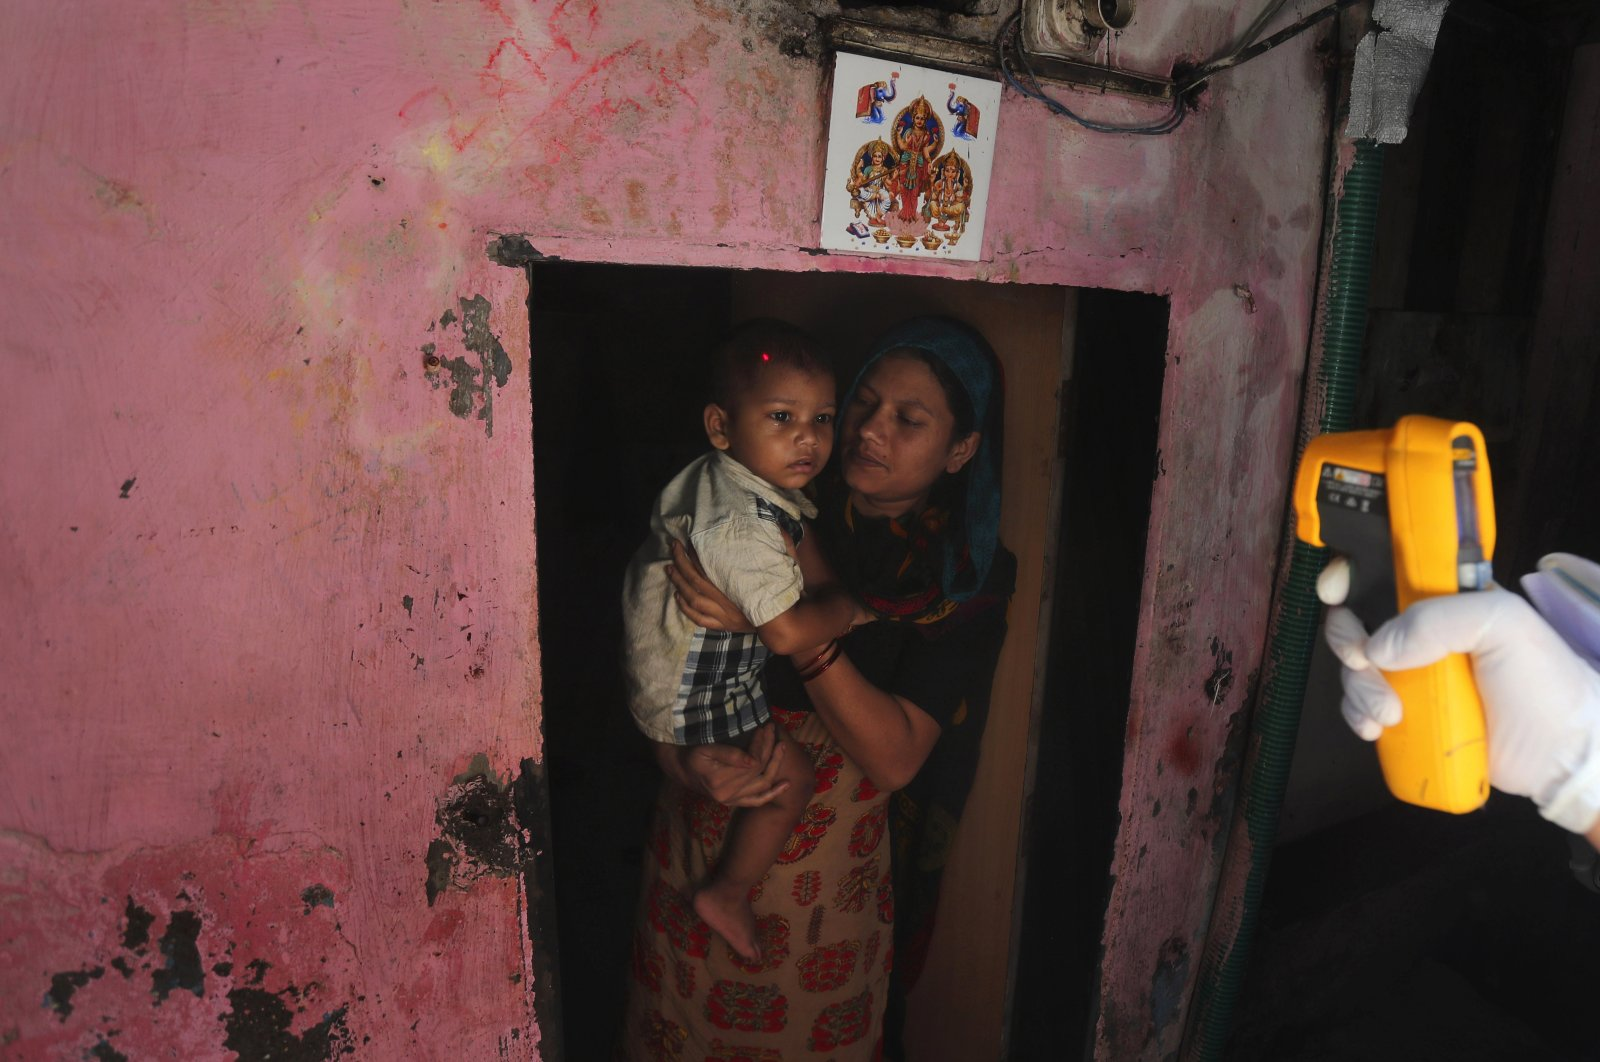 A health worker screens people for symptoms of COVID-19, Dharavi, Mumbai, Sept. 4, 2020. (AP Photo)